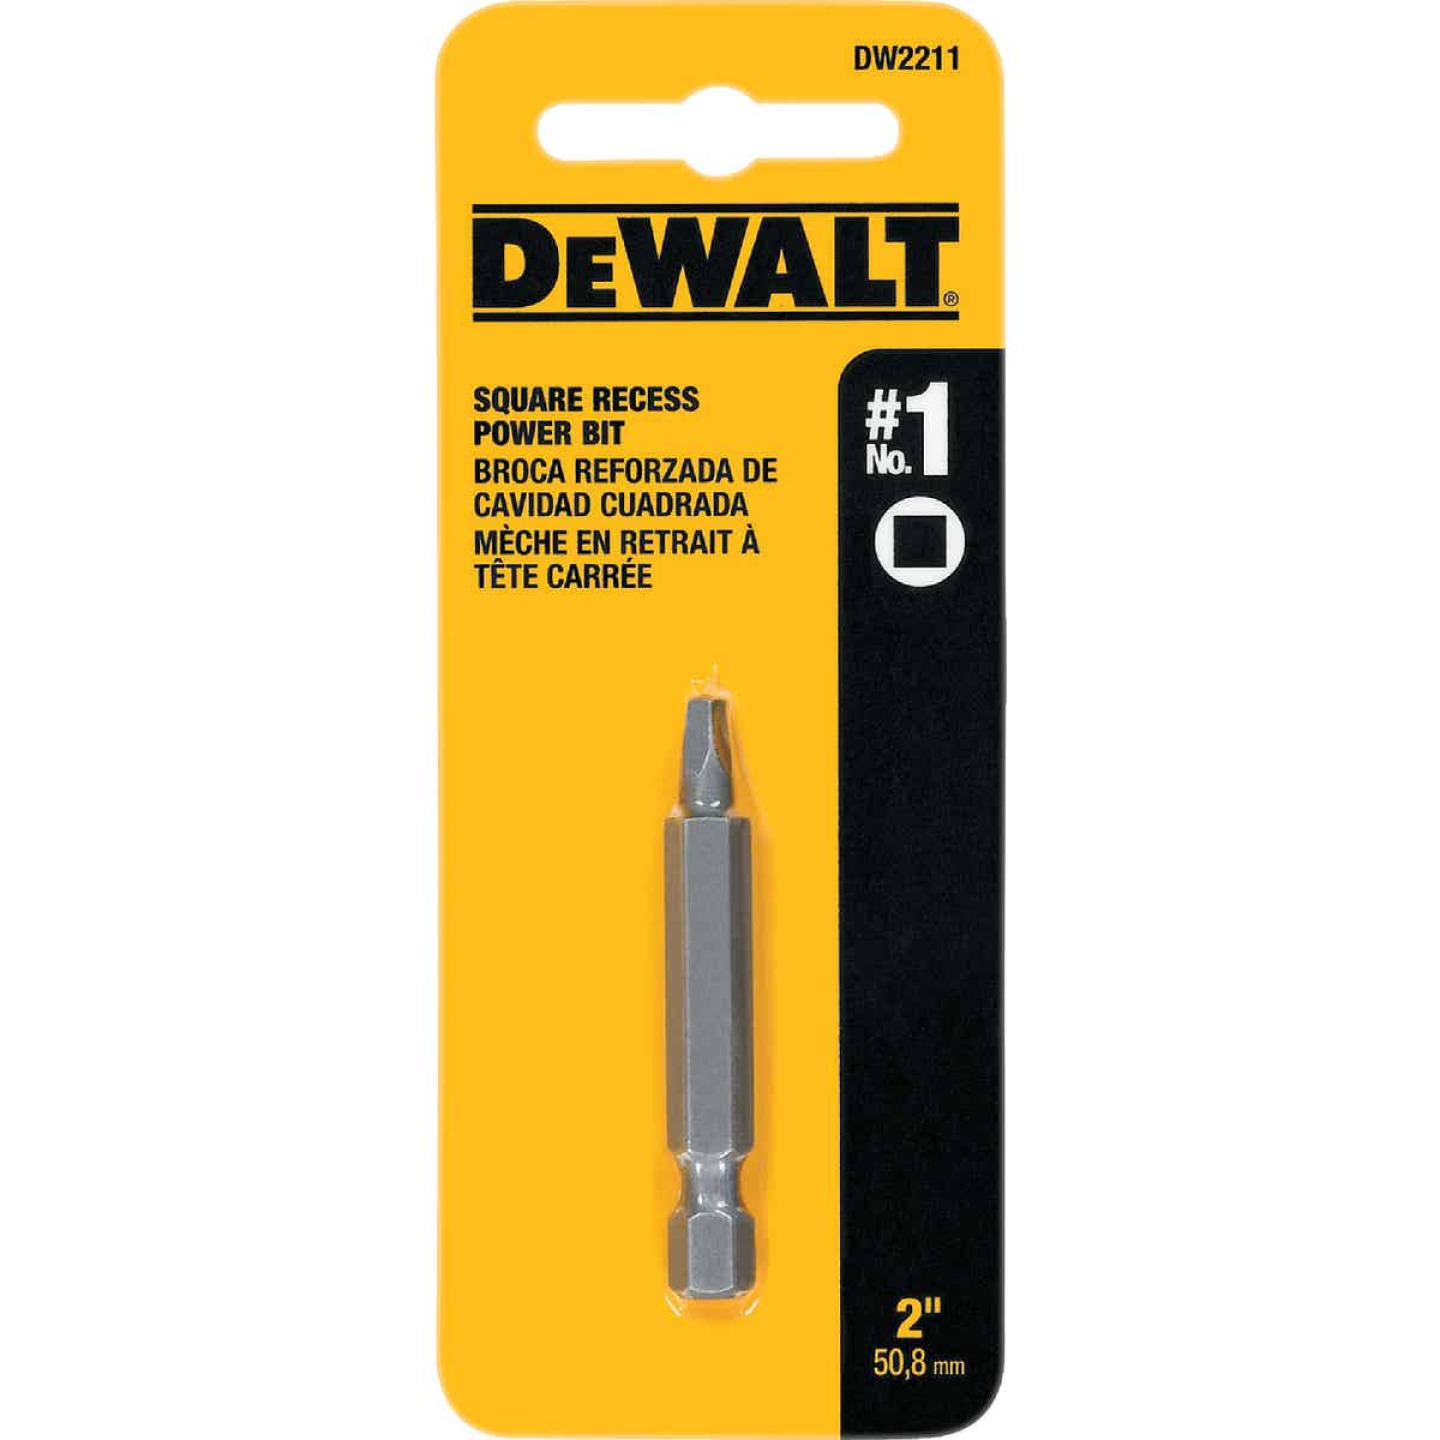 DeWalt Square Recess #1 2 In. Power Screwdriver Bit Image 2